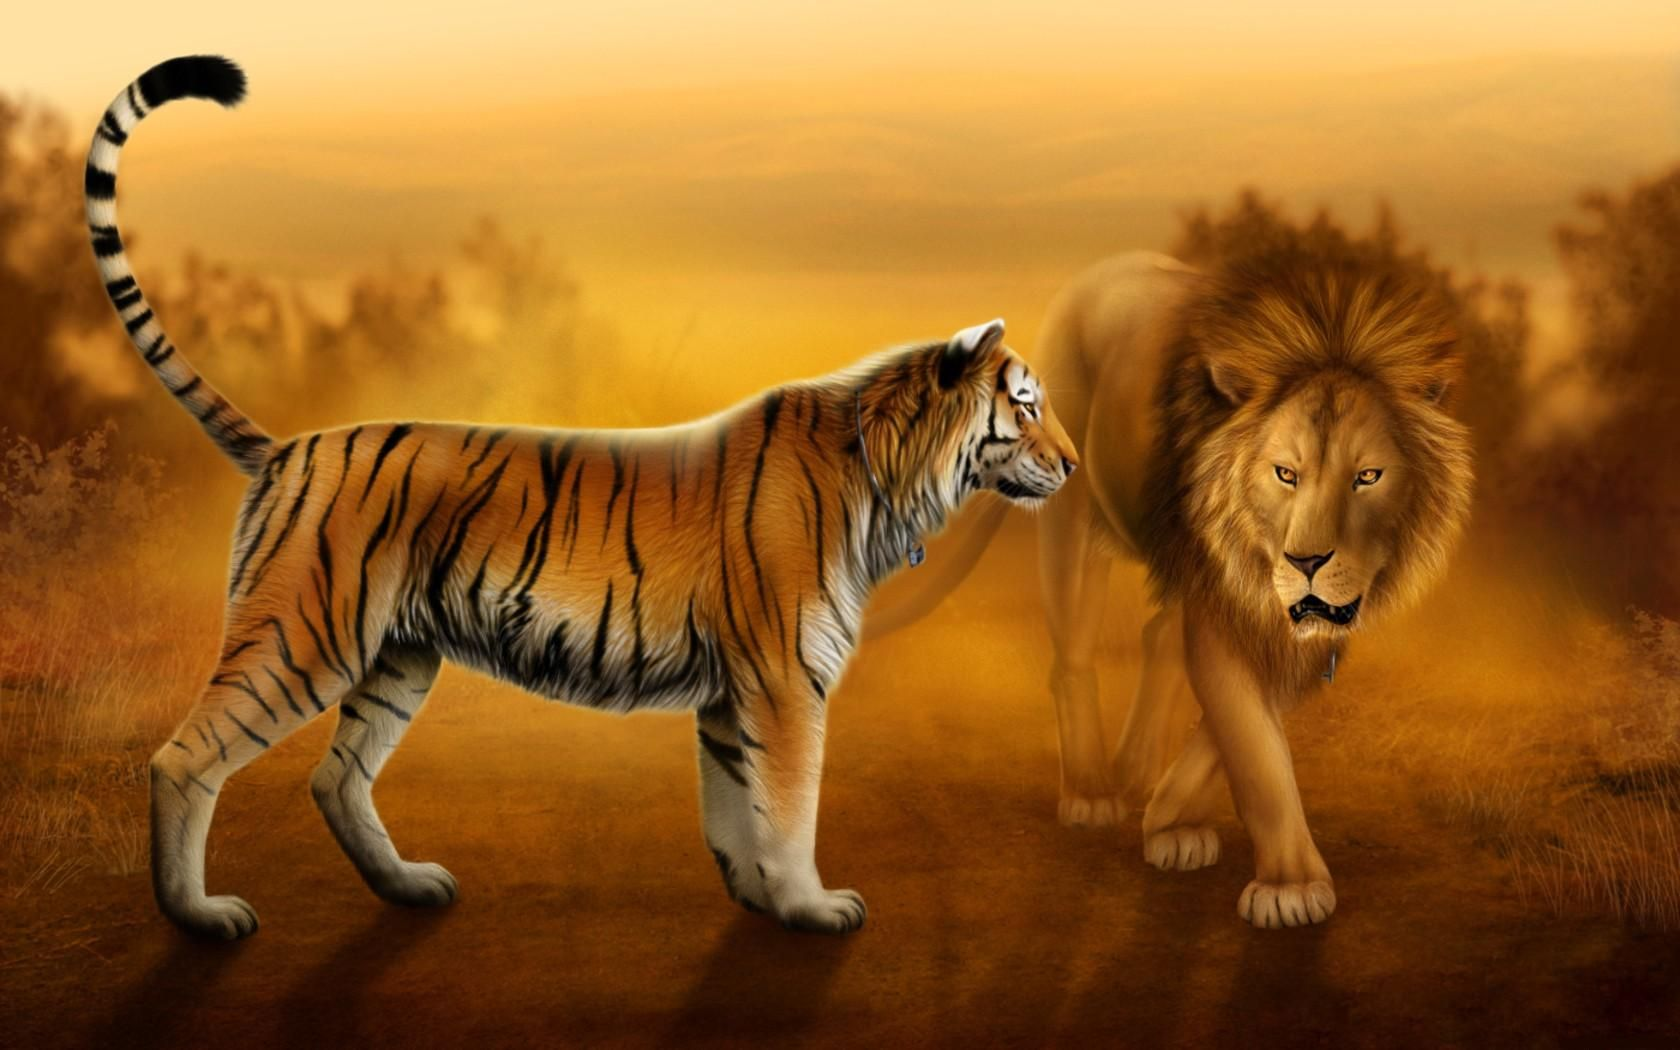 Big Cats - Learn Cool Facts about Pictures of lions tigers and cheetahs